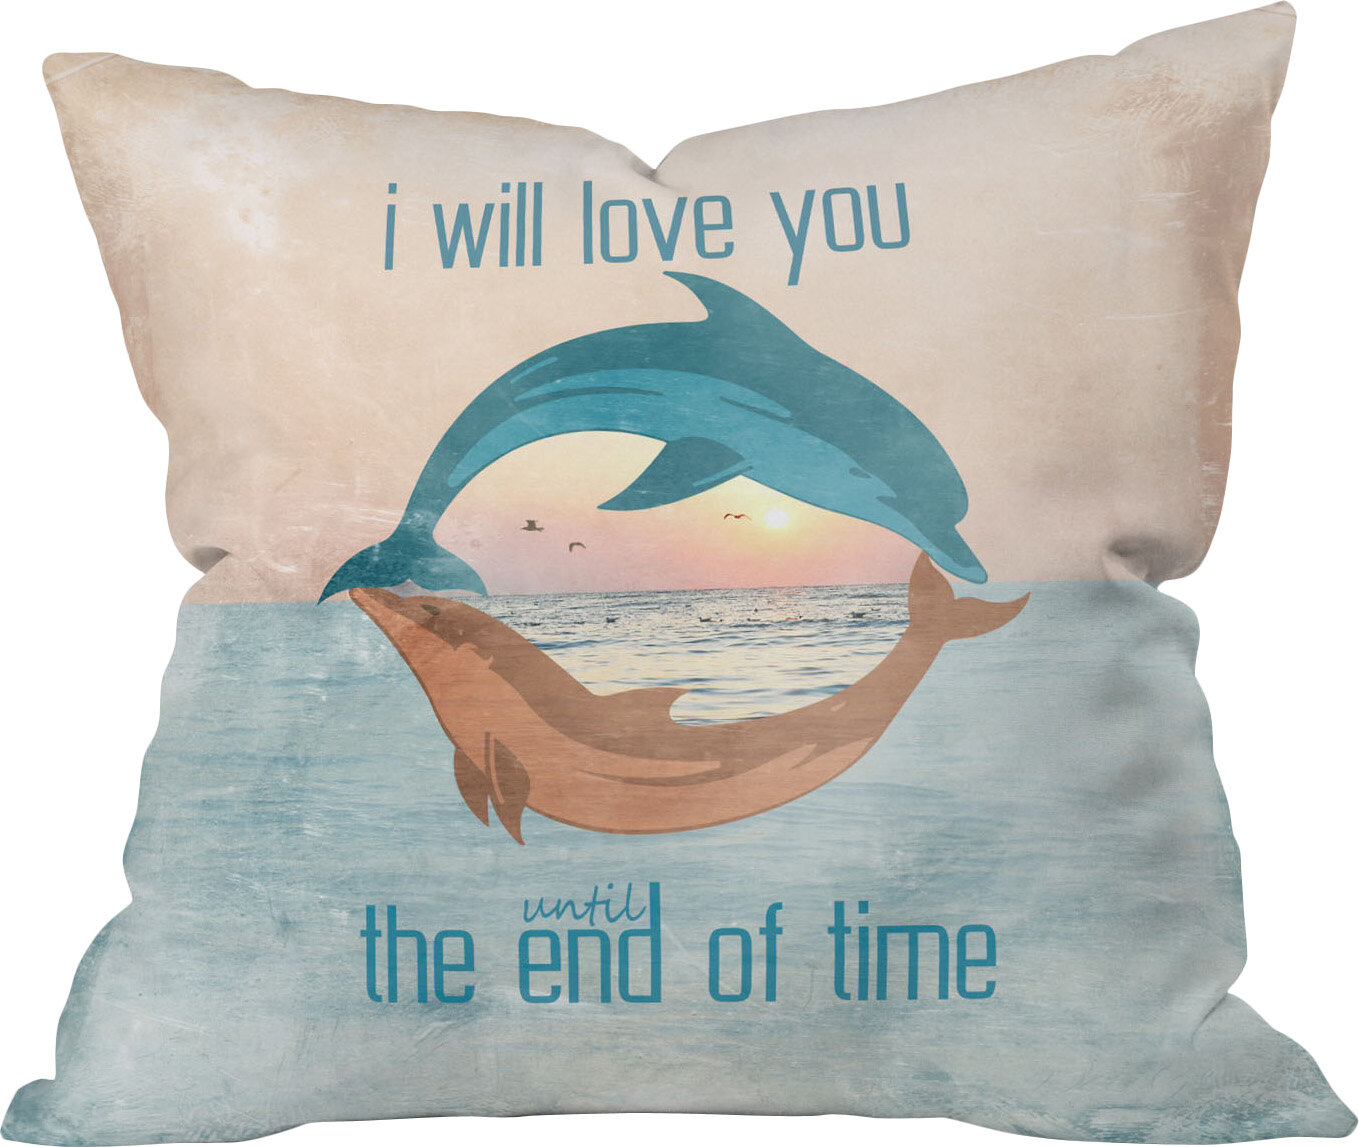 Deny Designs Until The End Of Time Outdoor Throw Pillow Wayfair